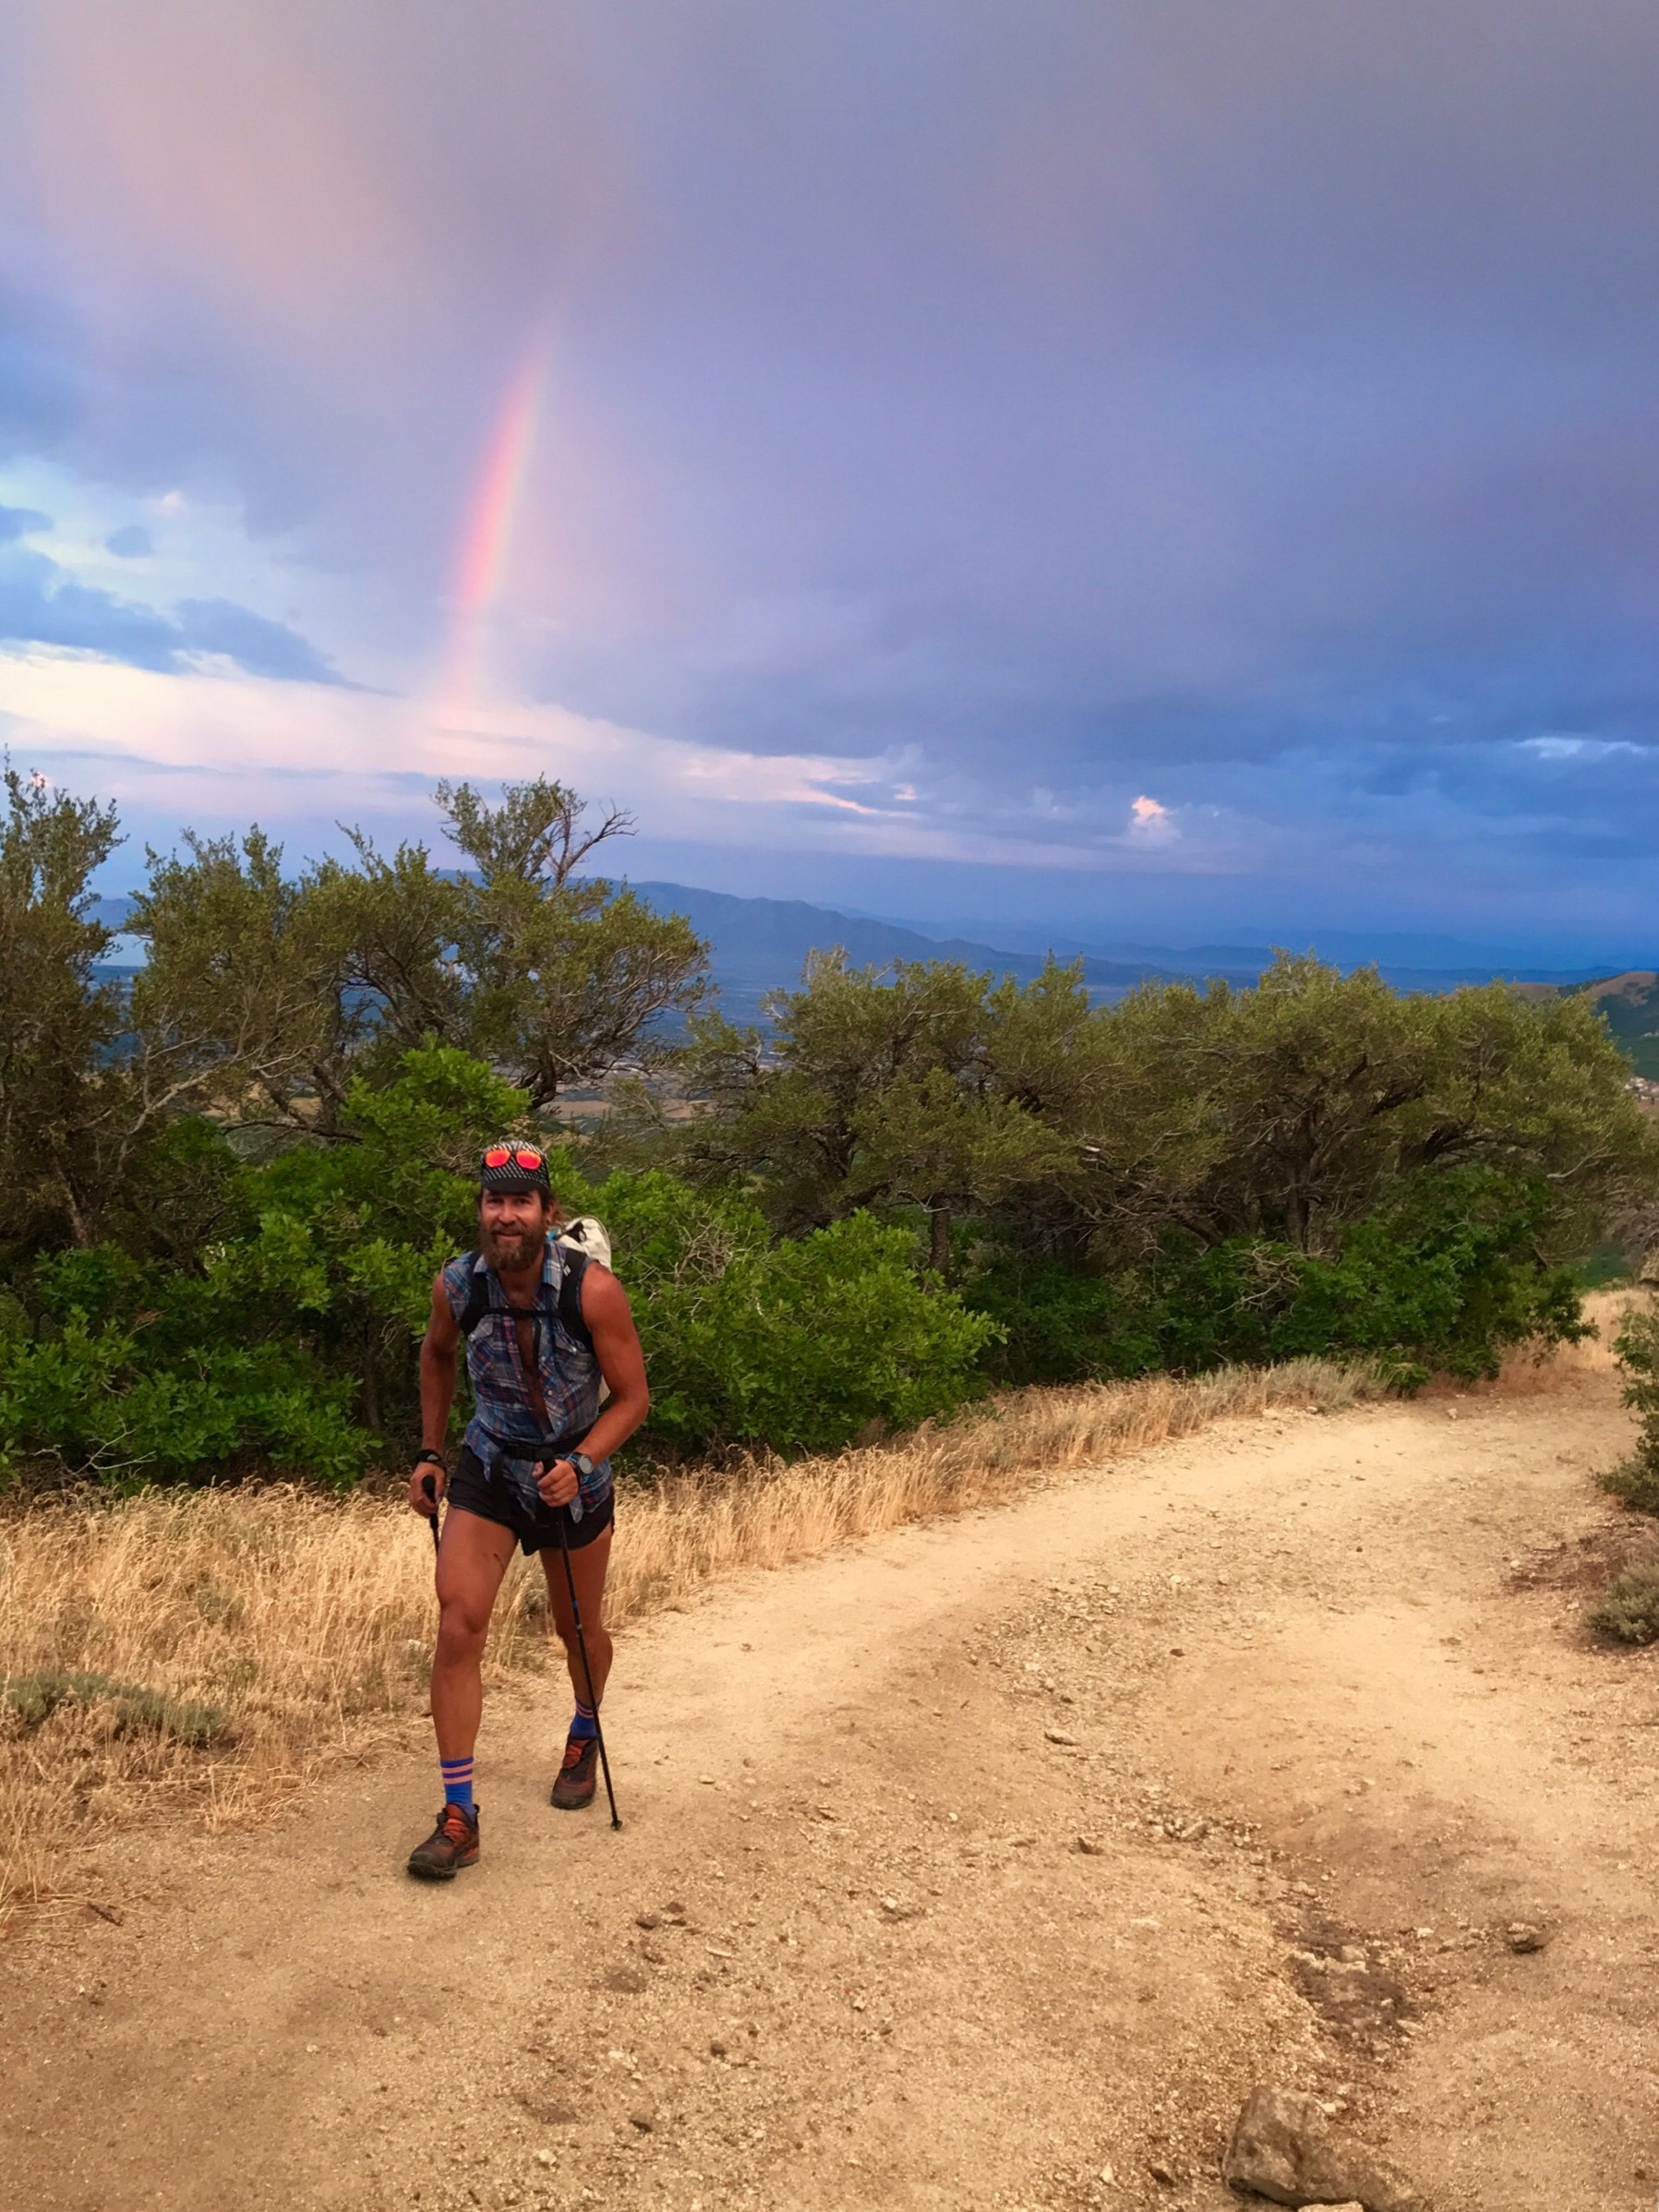 Saving my foot, using those sticks on the approach. That rainbow tho! Photo: Jason Dorais.